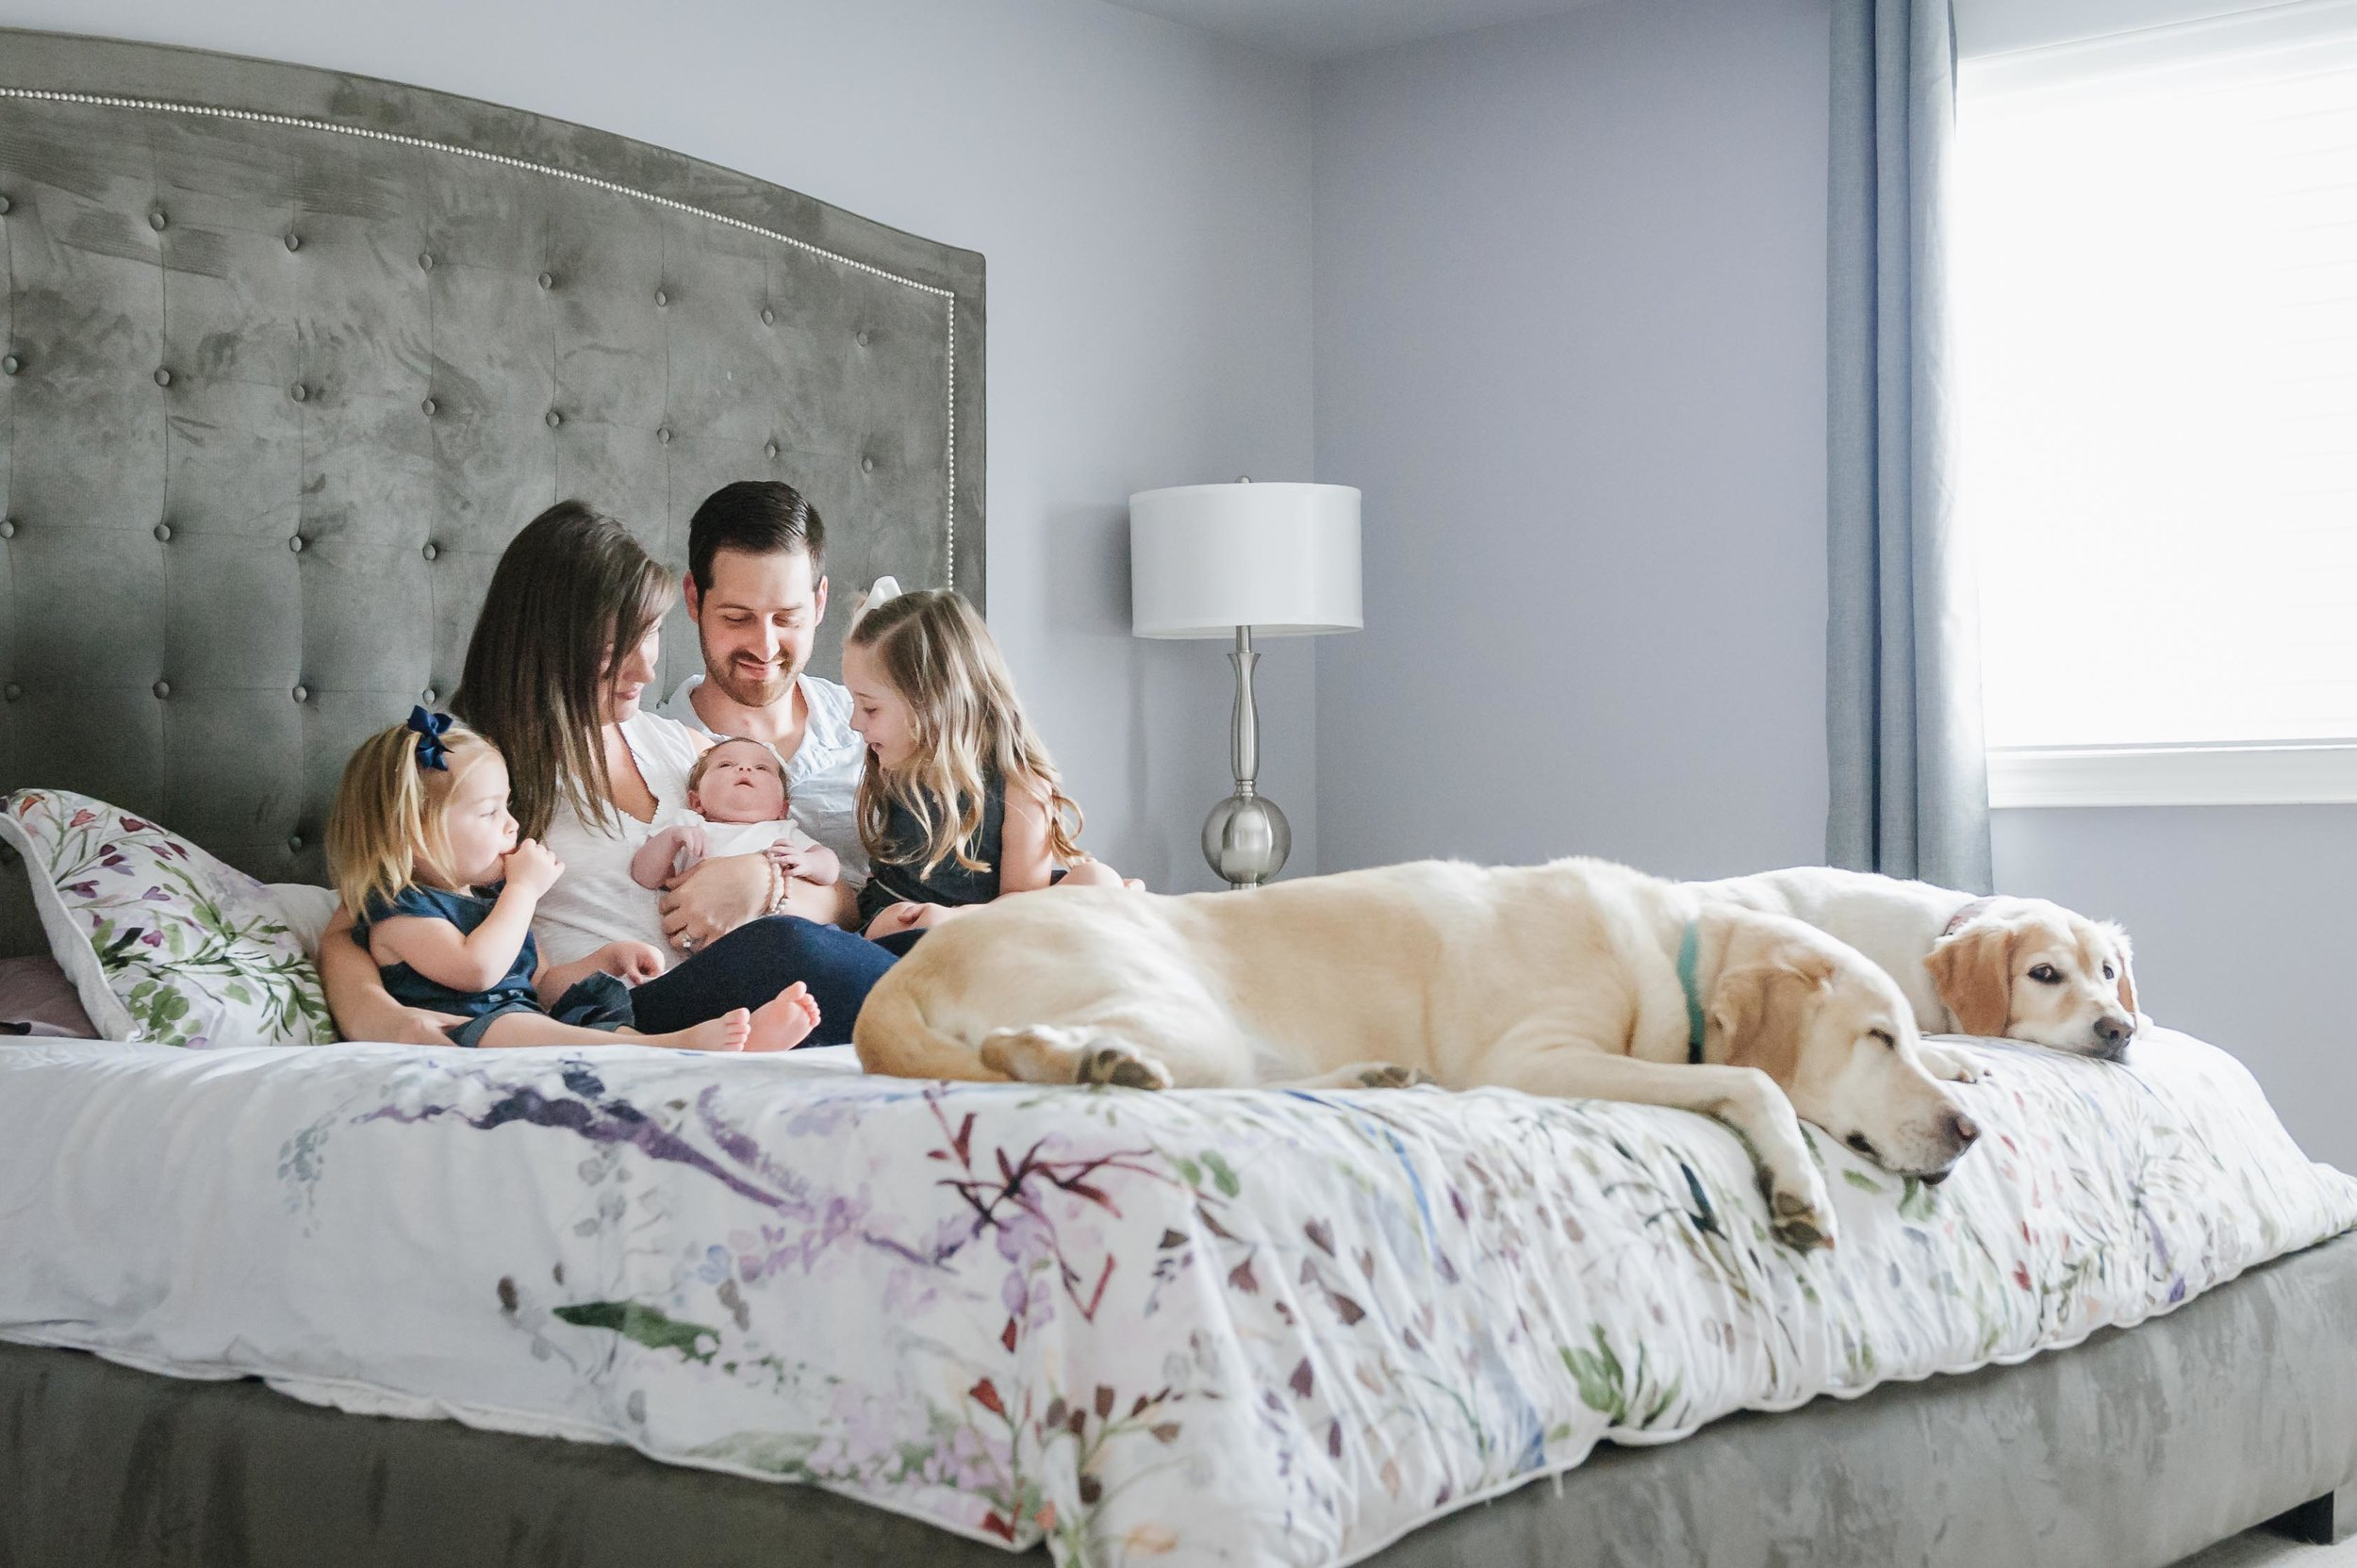 family of 5 on bed with dogs - Niagara lifestyle photographer